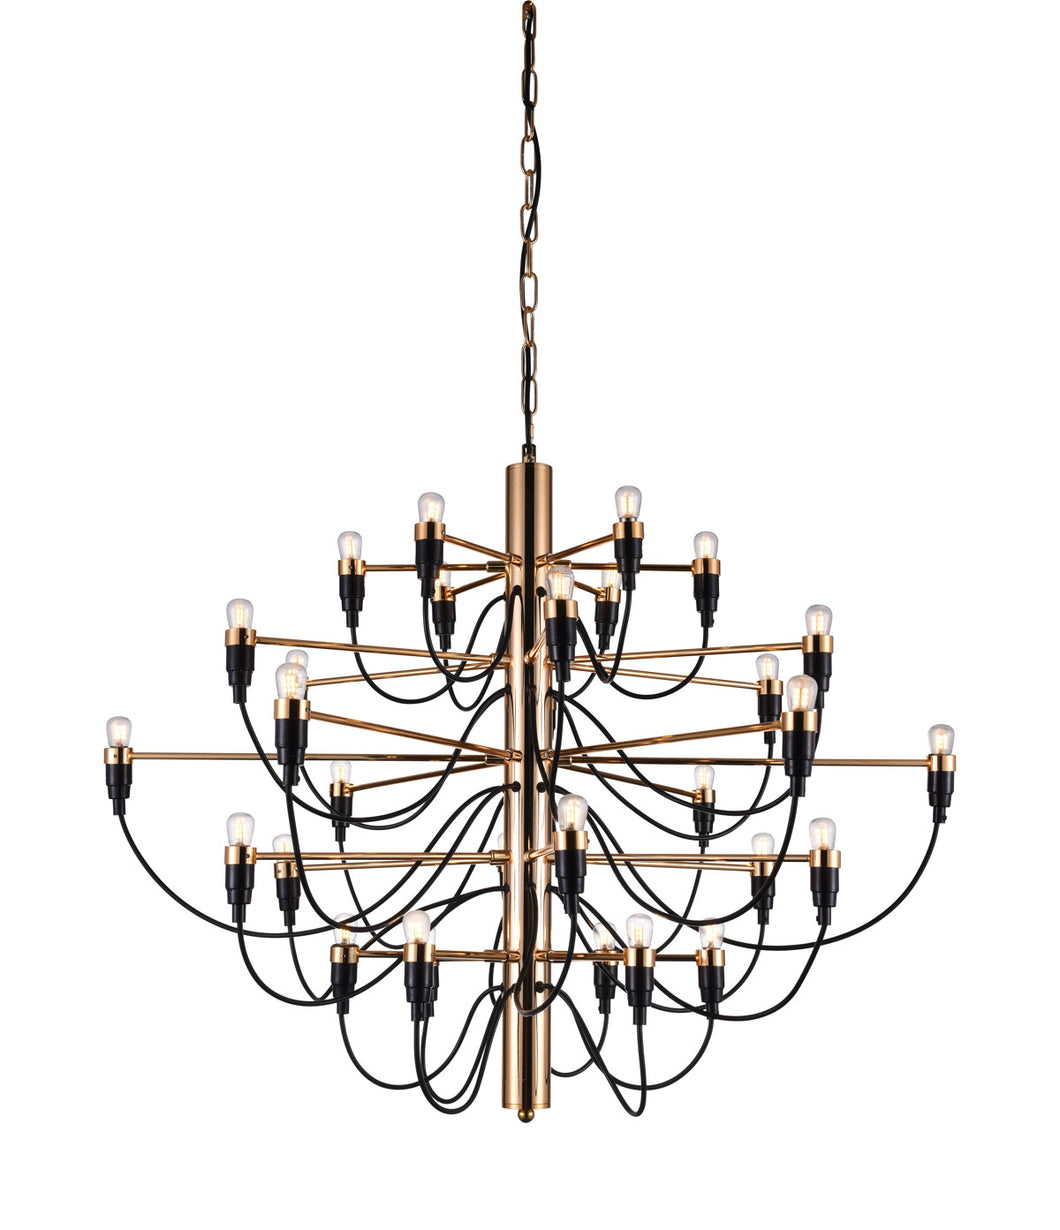 30 Light  Chandelier with Gold finish